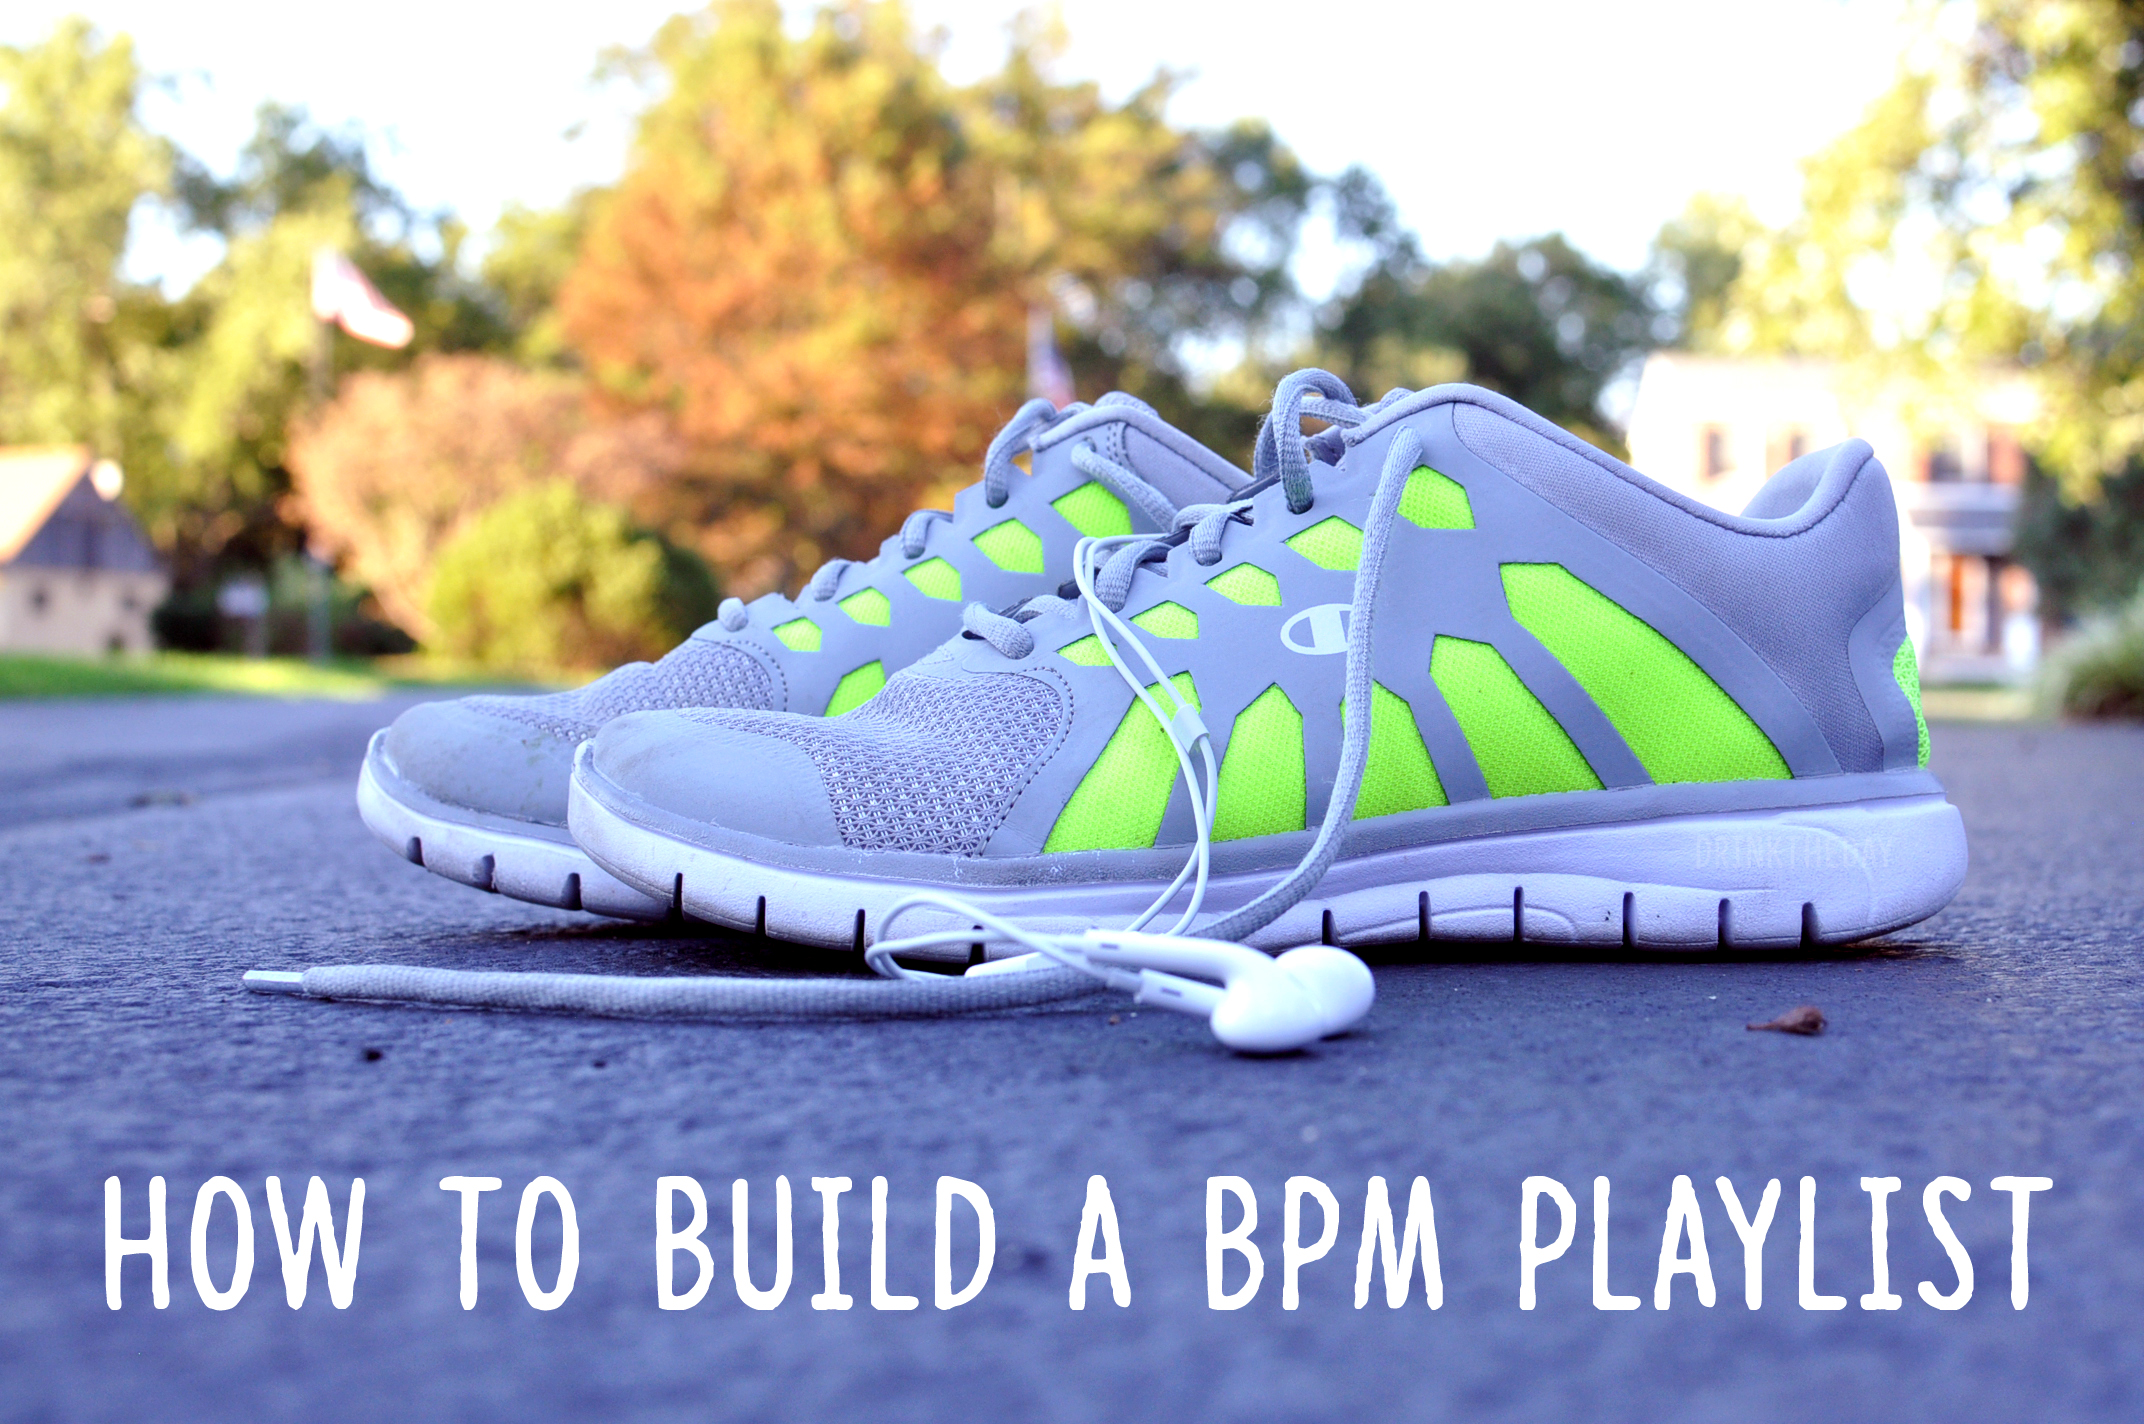 How To Build A BPM Playlist | Drink the Day